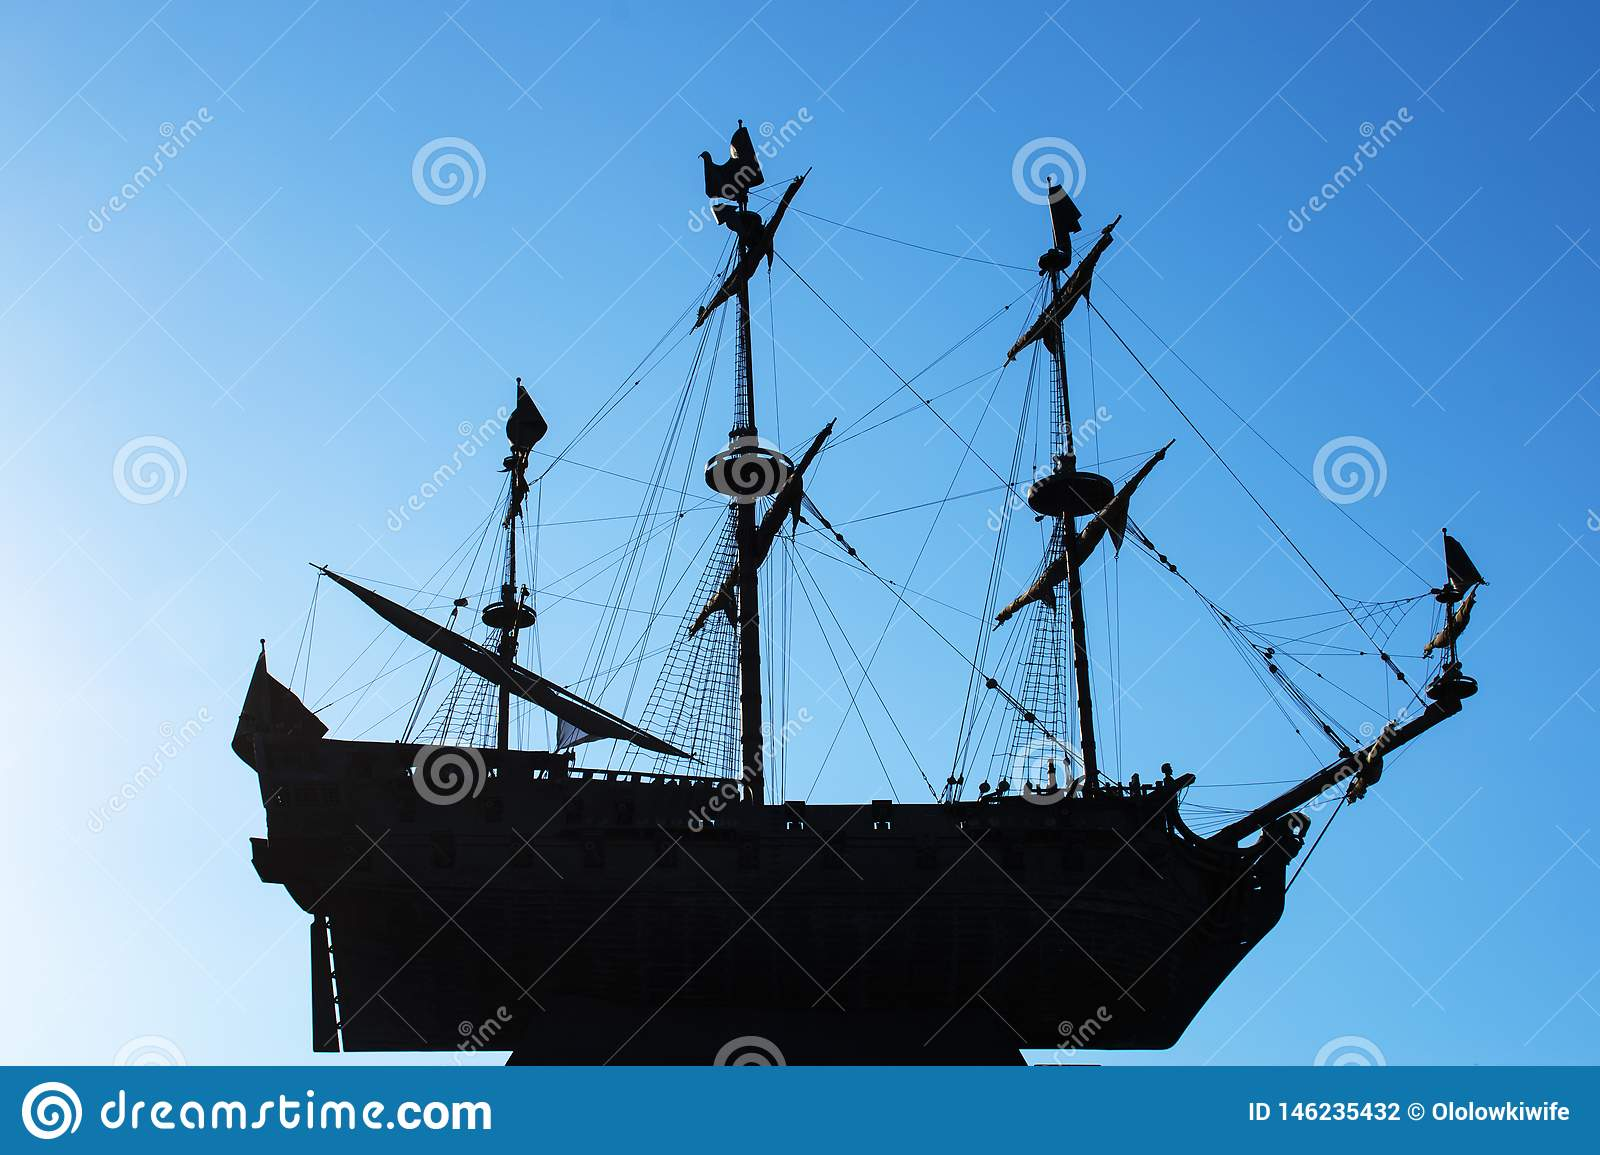 Silhouette of a frigate on a blue clear sky. Three-masted sailing ship soaring in the air